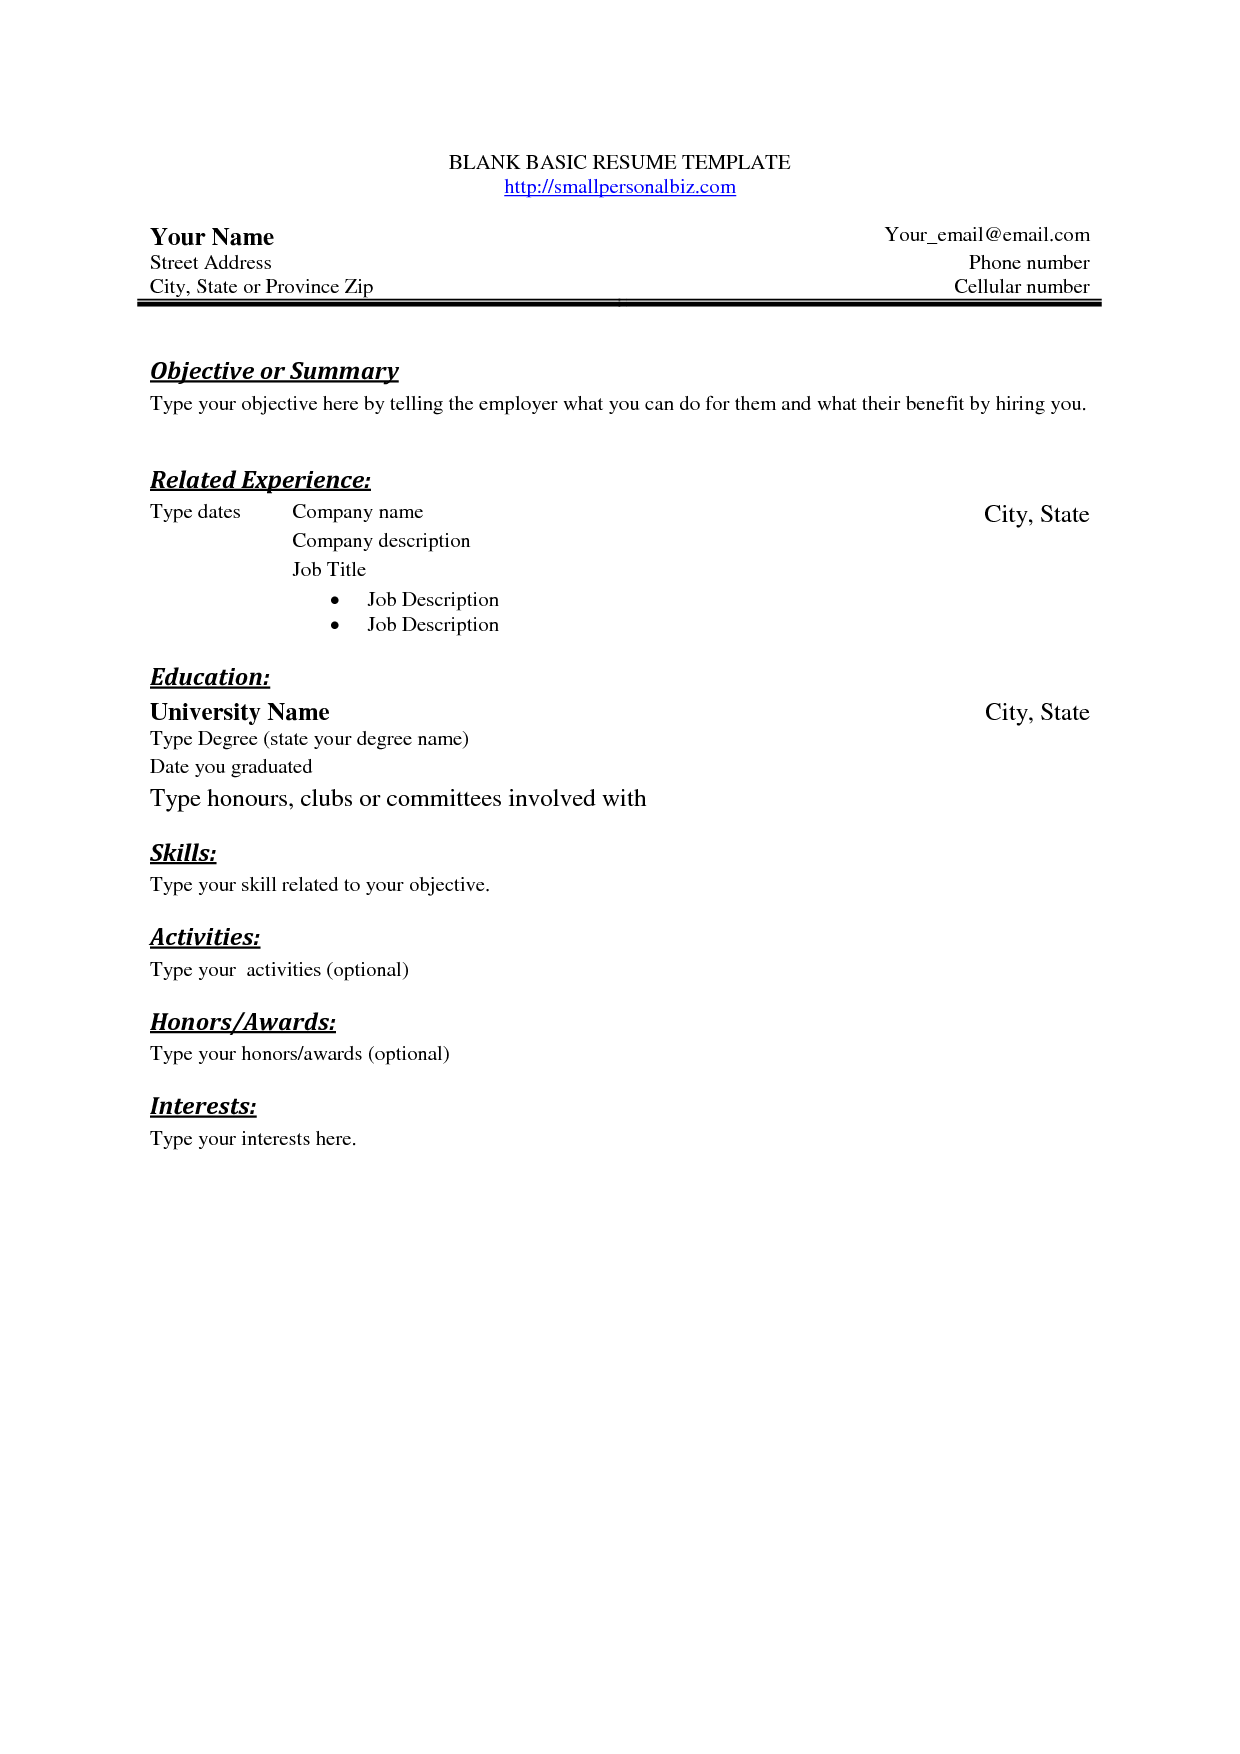 Free Basic Blank Resume Template | Free Basic Sample Resume | Beauty ...